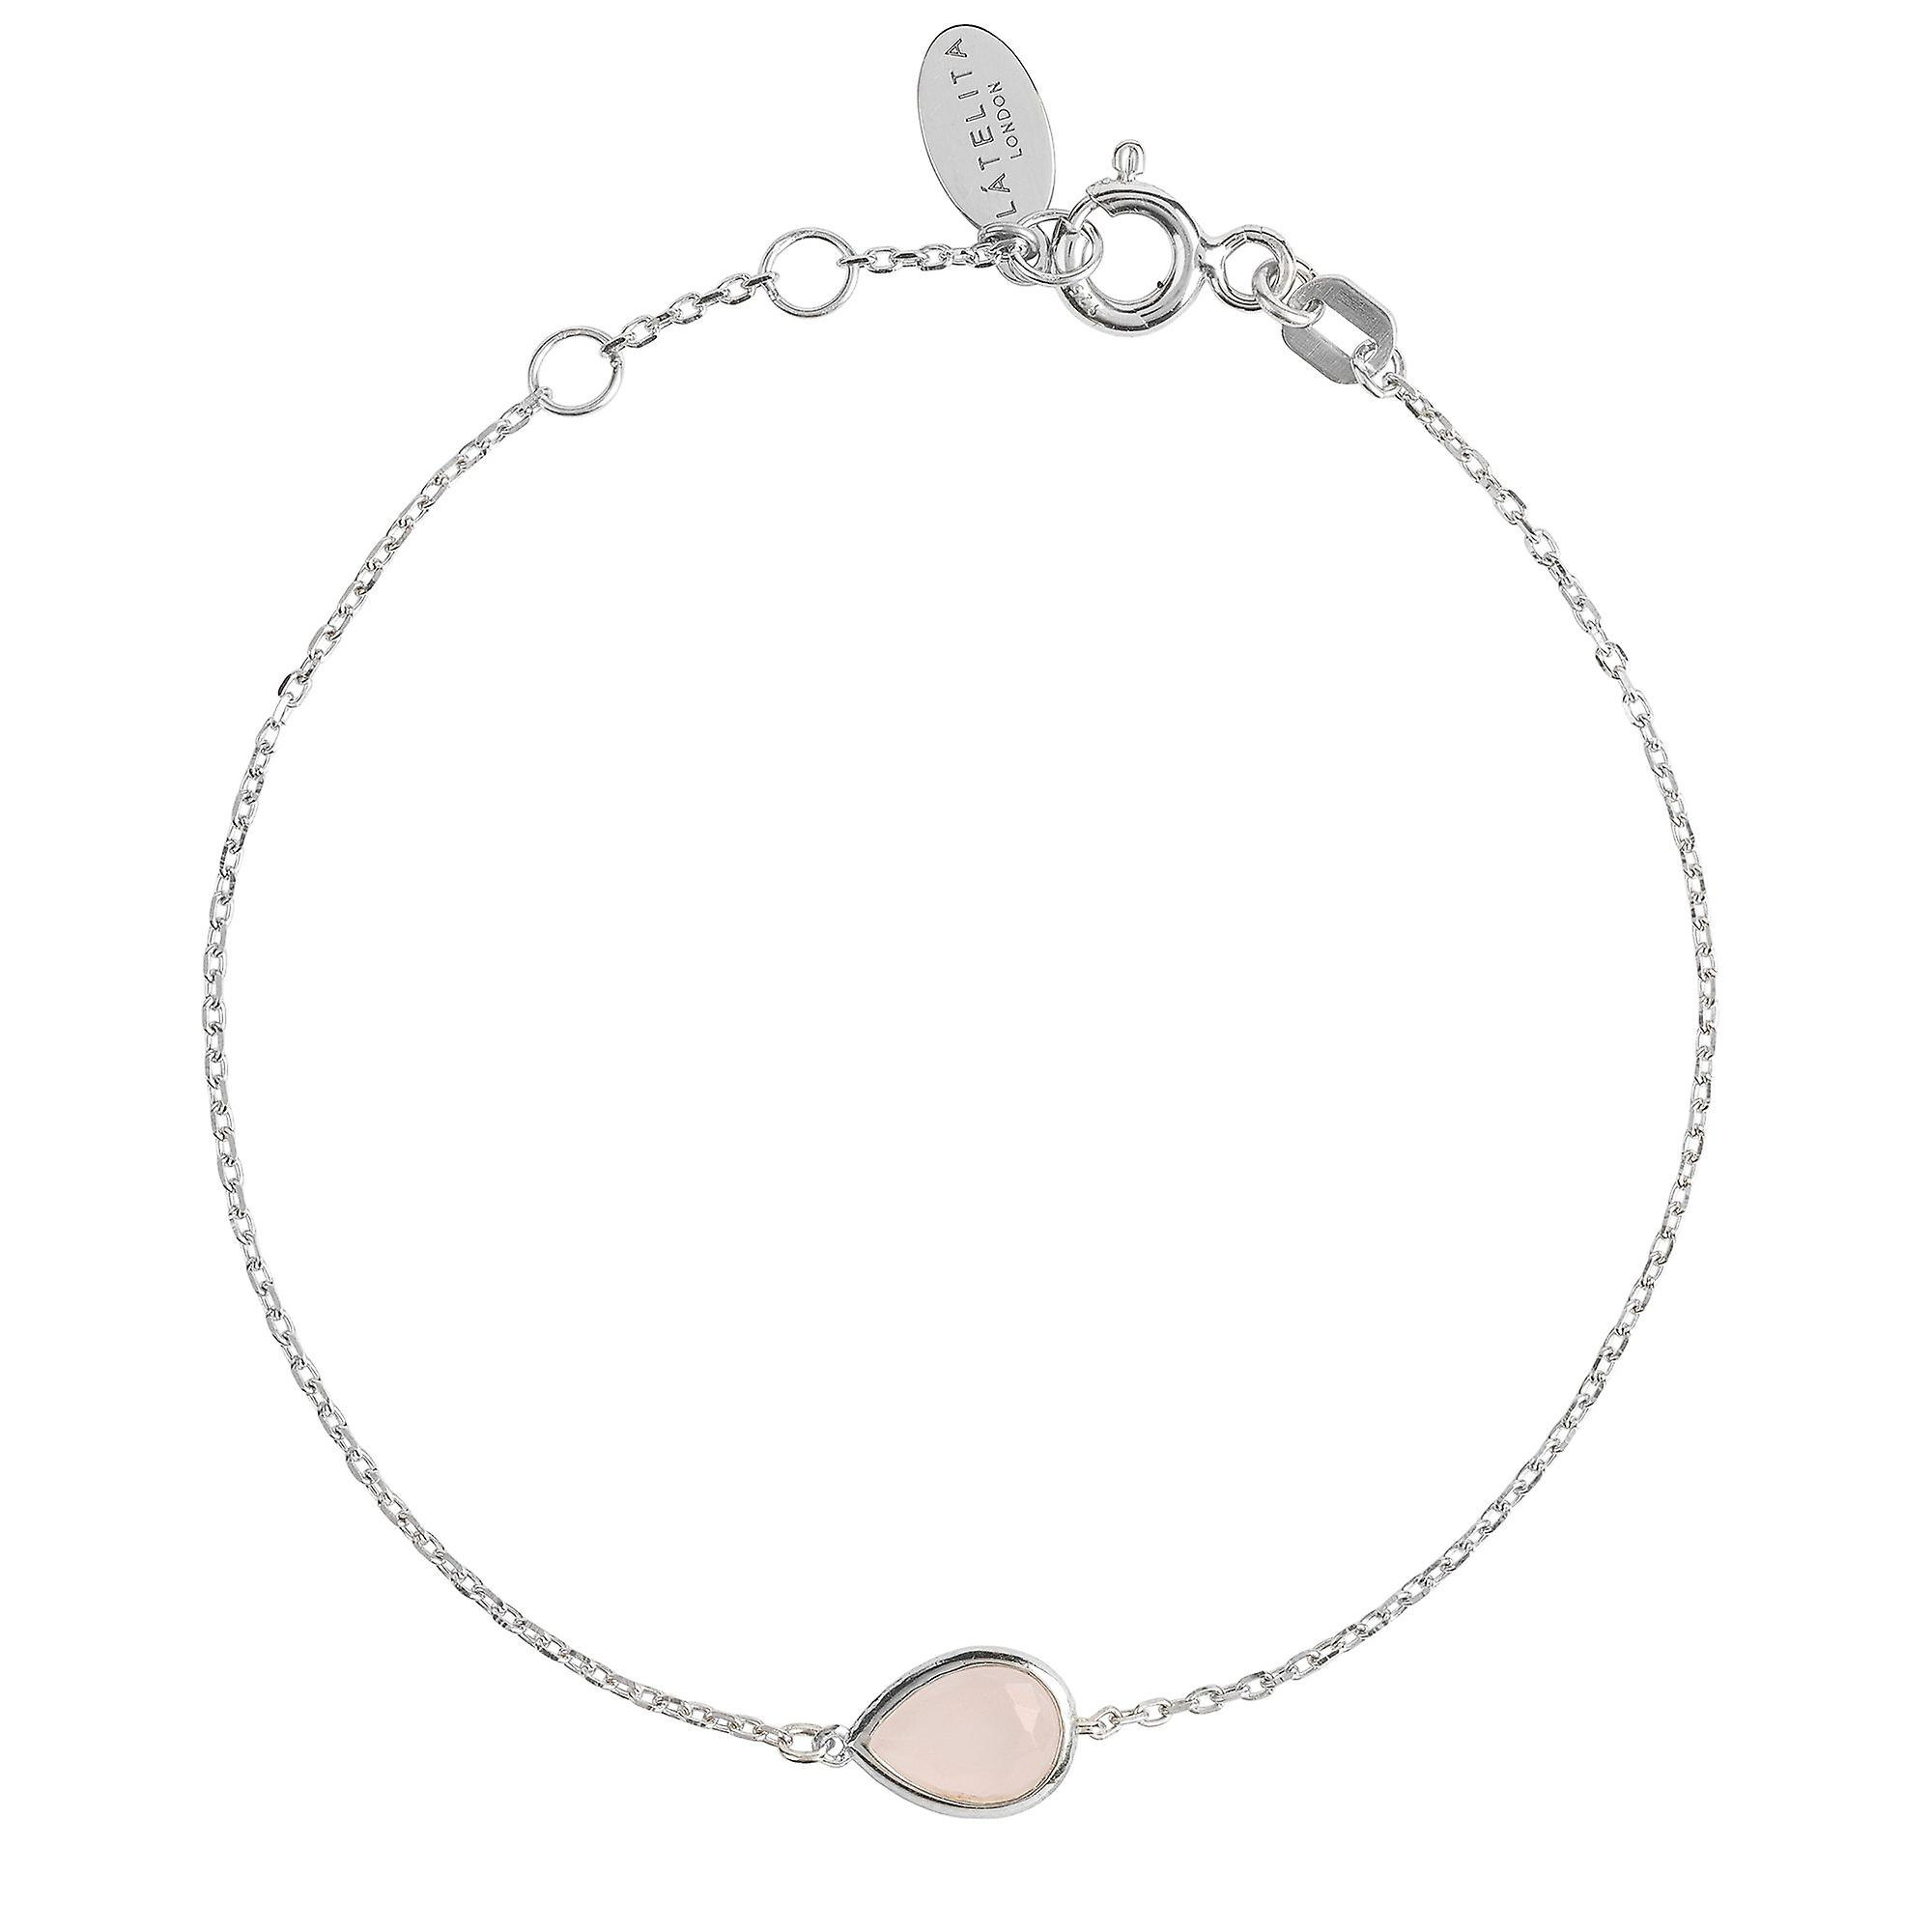 Latelita Bracelet Pink Rose Quartz Small Gem Bridesmaid Gift Sterling Silver